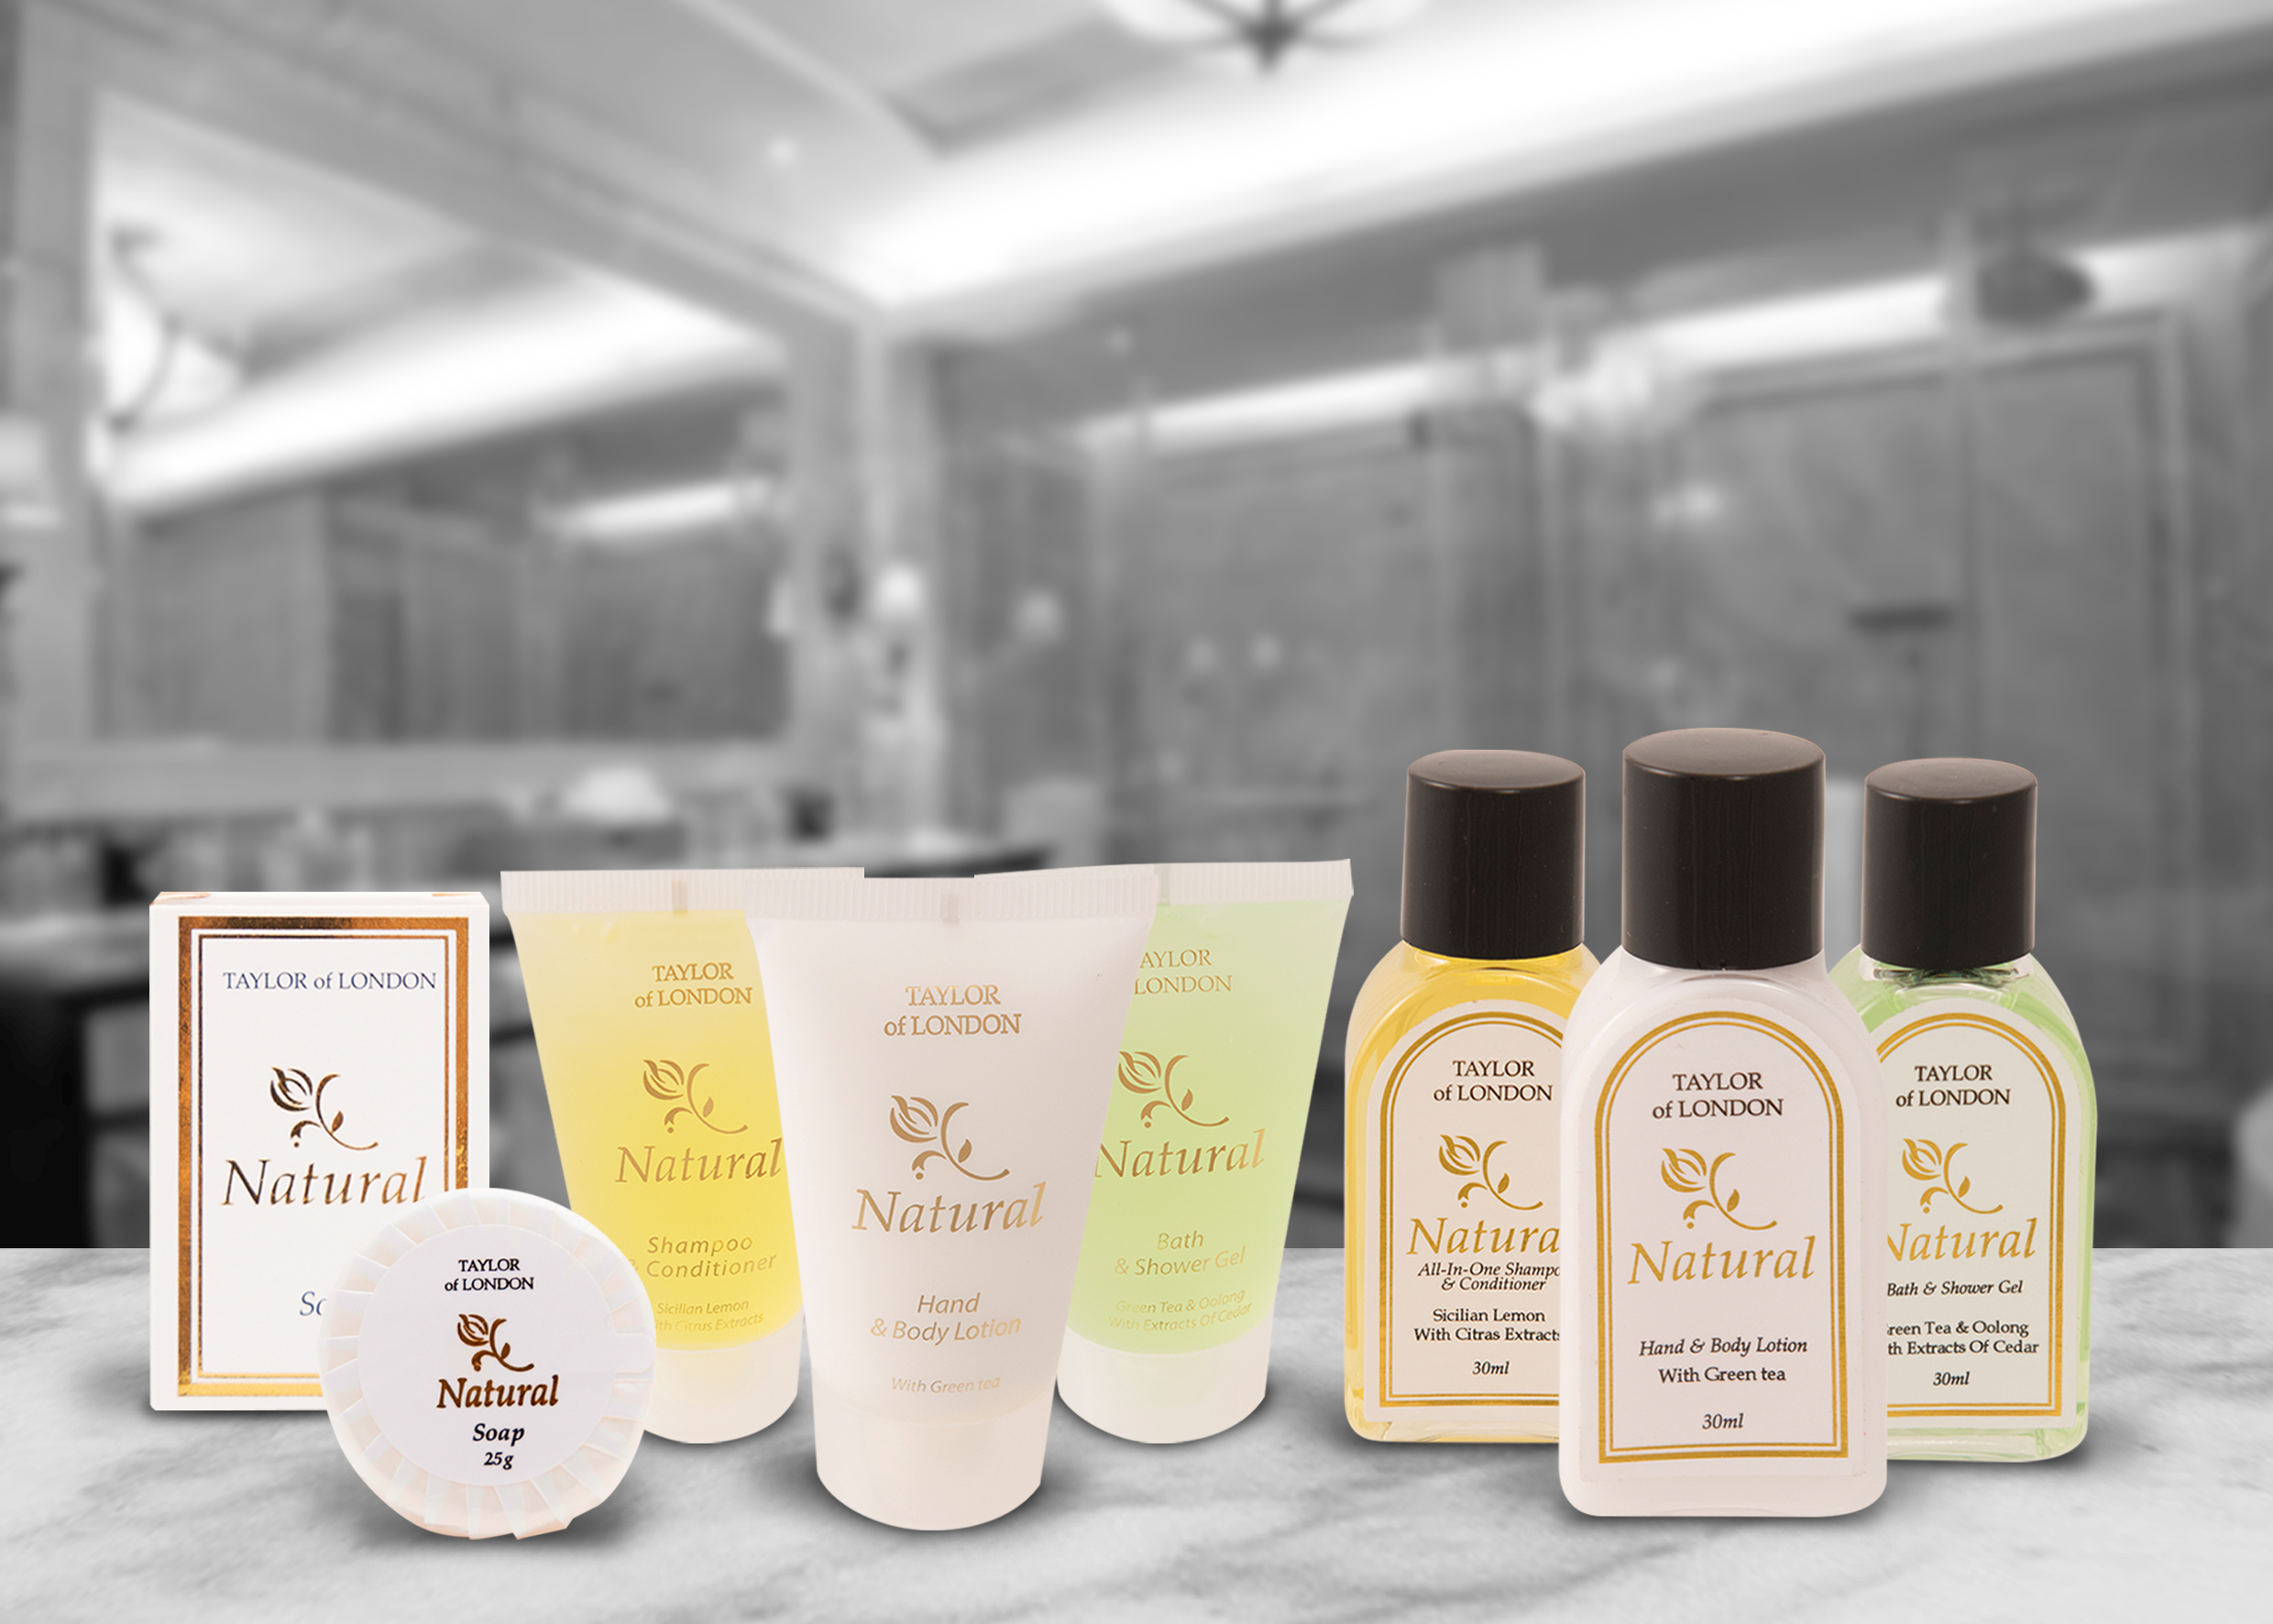 Traditional Natural By Taylor Of London Hotel Toiletries